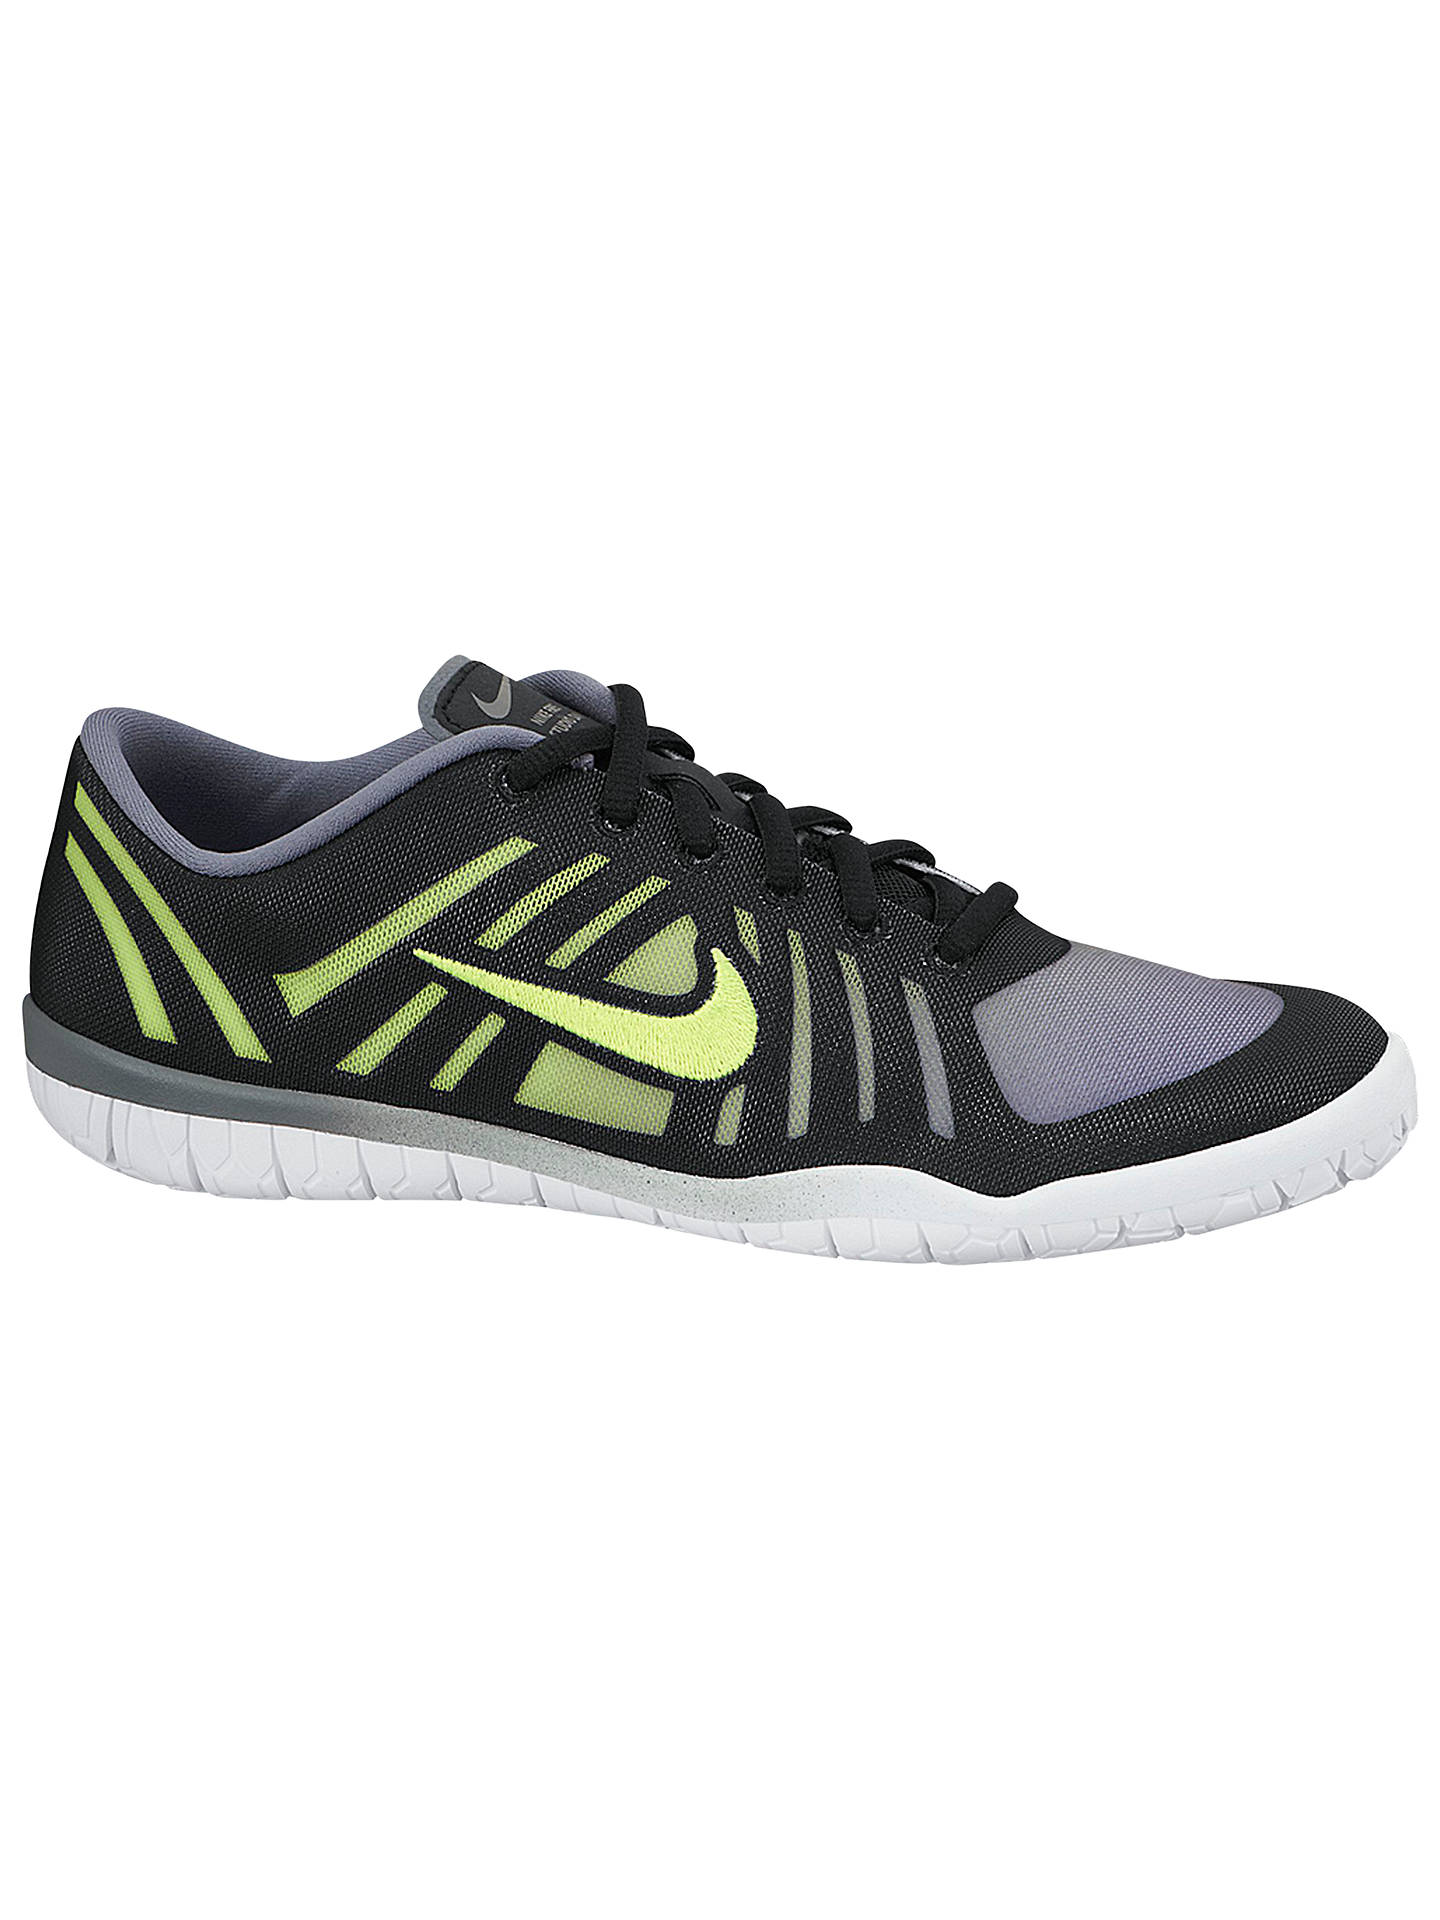 39a5d53f7fc4a5 Nike Free 3.0 Studio Dance Shoes at John Lewis   Partners